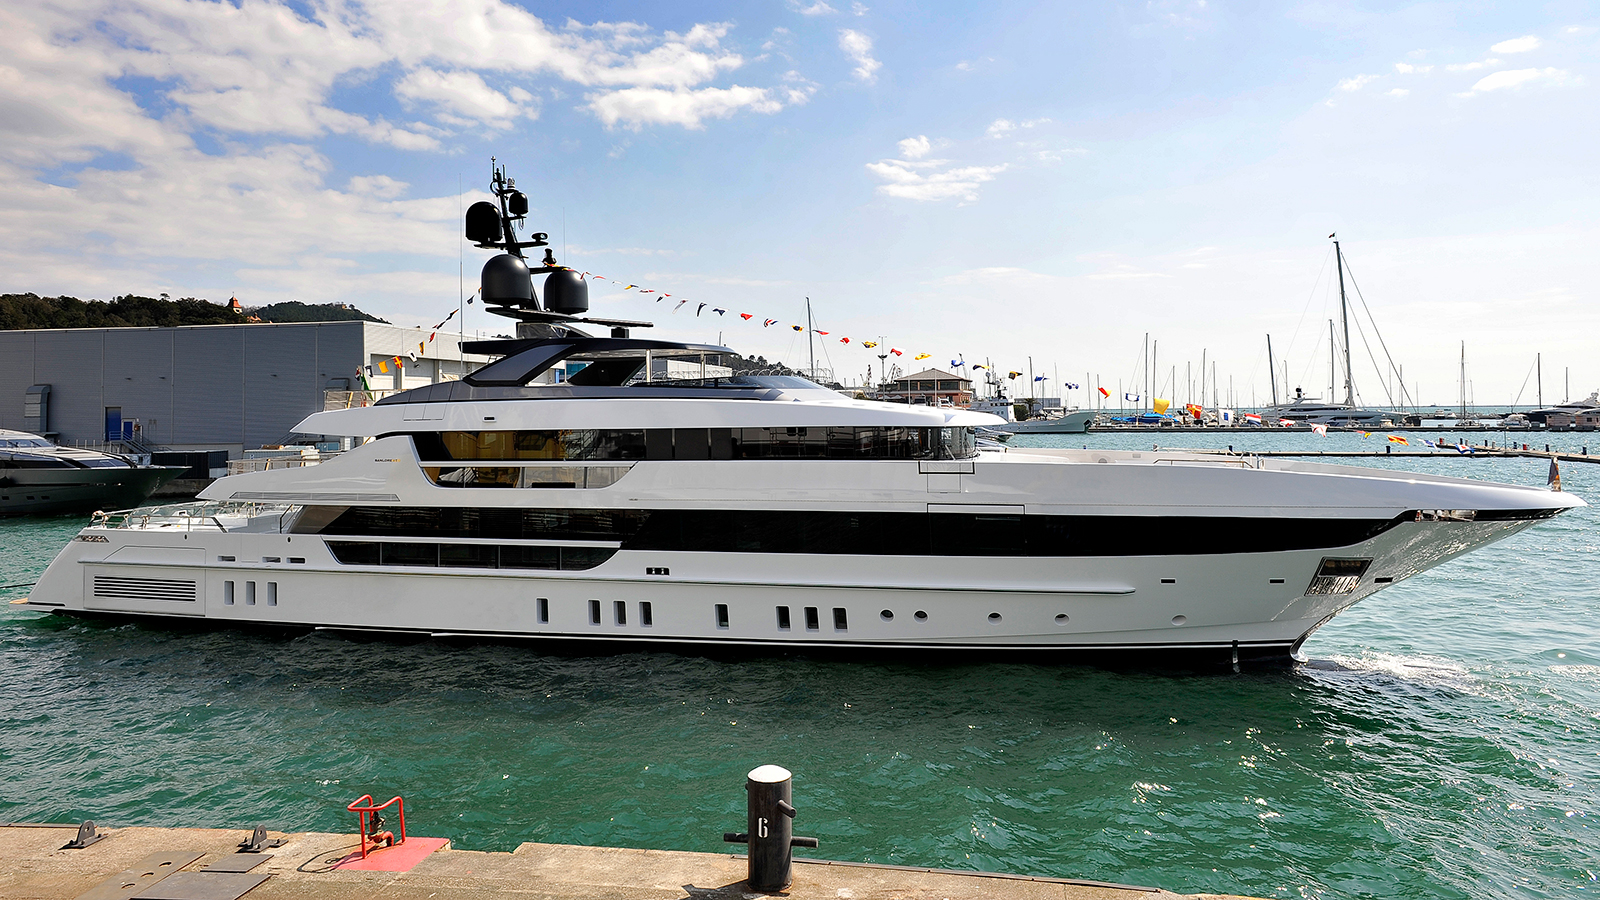 the-second-sanlorenzo-52-steel-yacht-was-christened-in-march-2018